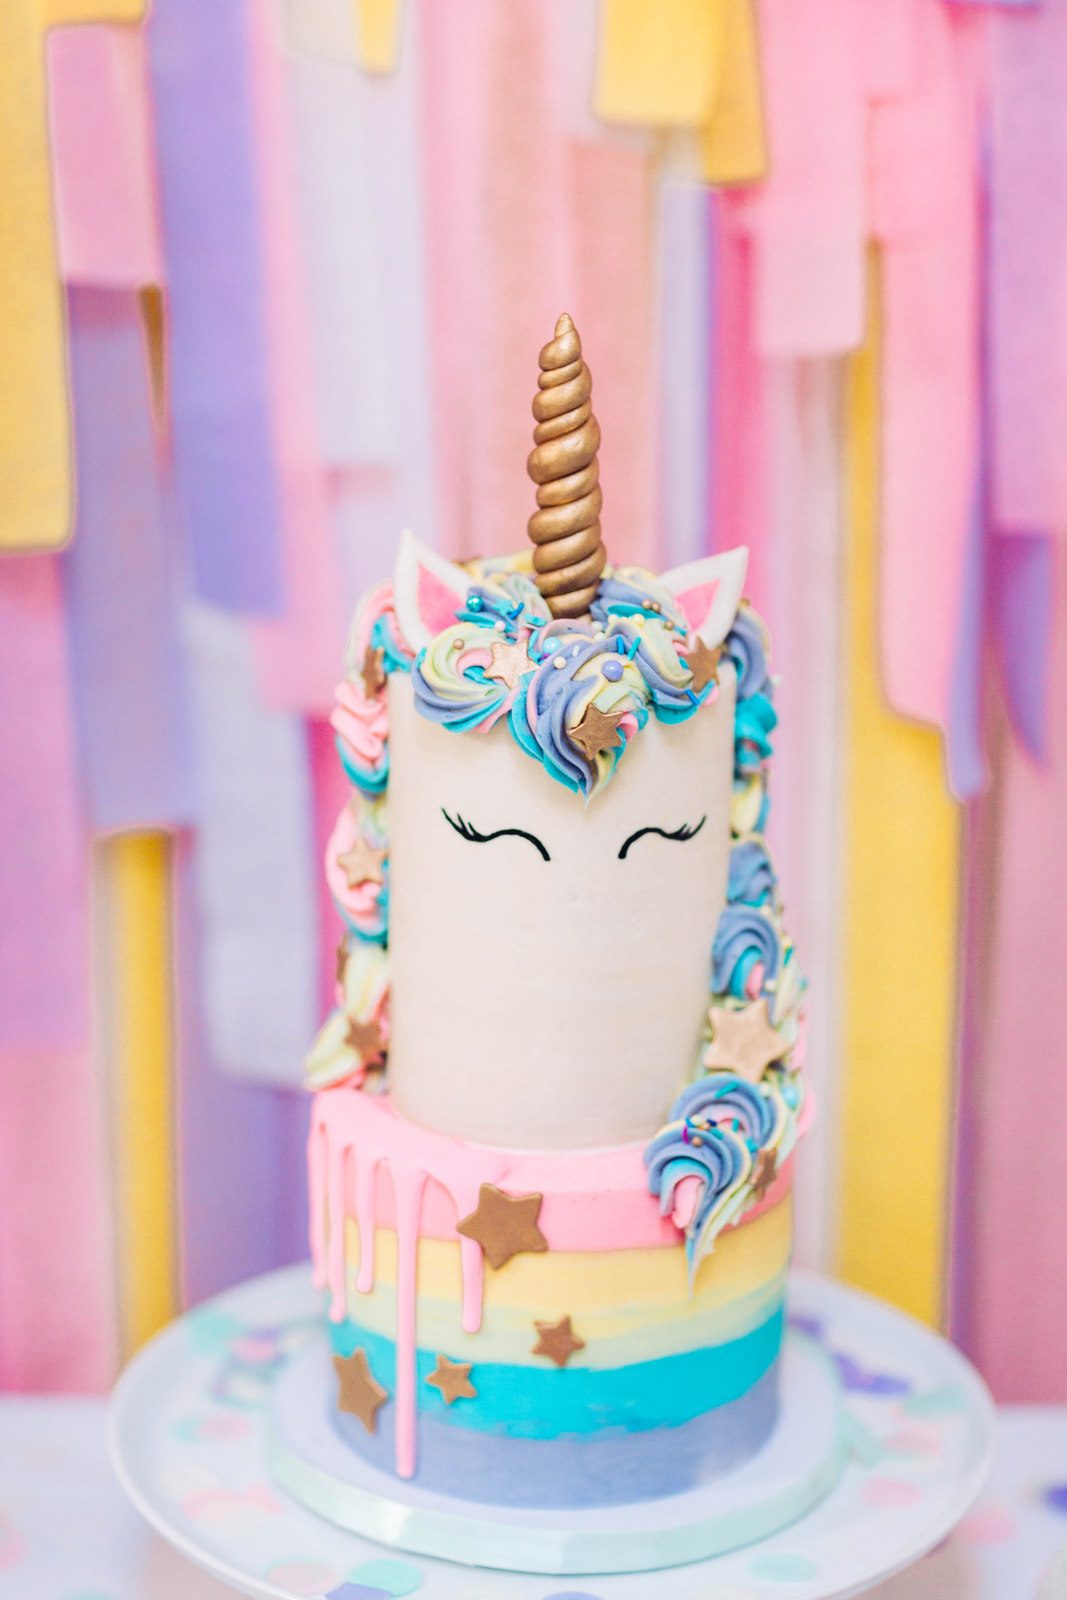 A Magical Unicorn Birthday Party - Vivian's 3rd Birthday! by Utah mom blogger Sandy A La Mode